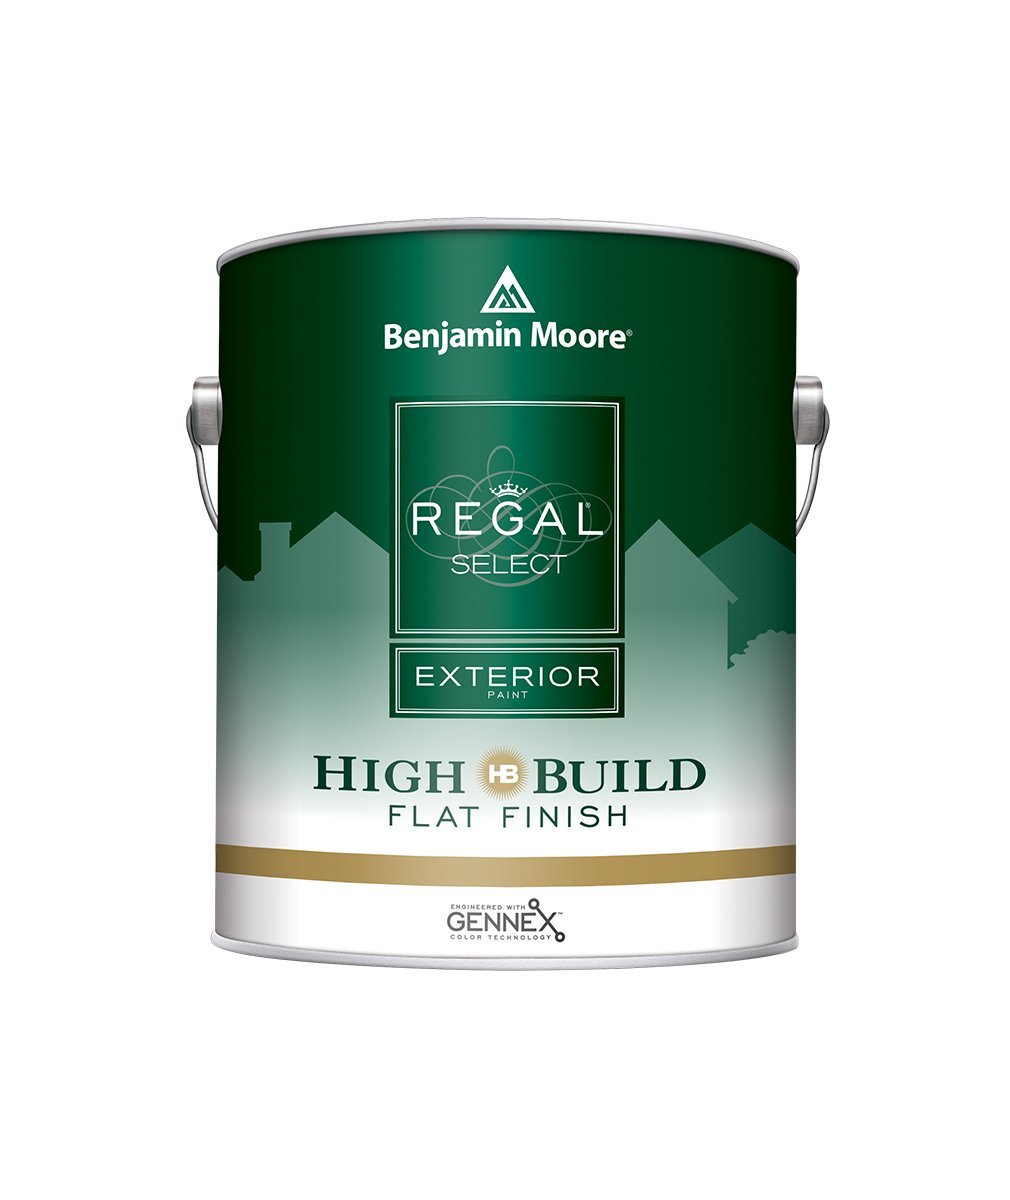 Benjamin Moore Regal Select High Build Flat Exterior Paint Gallon, , available at Johnson Paint & Maine Paint in MA, NH & ME.